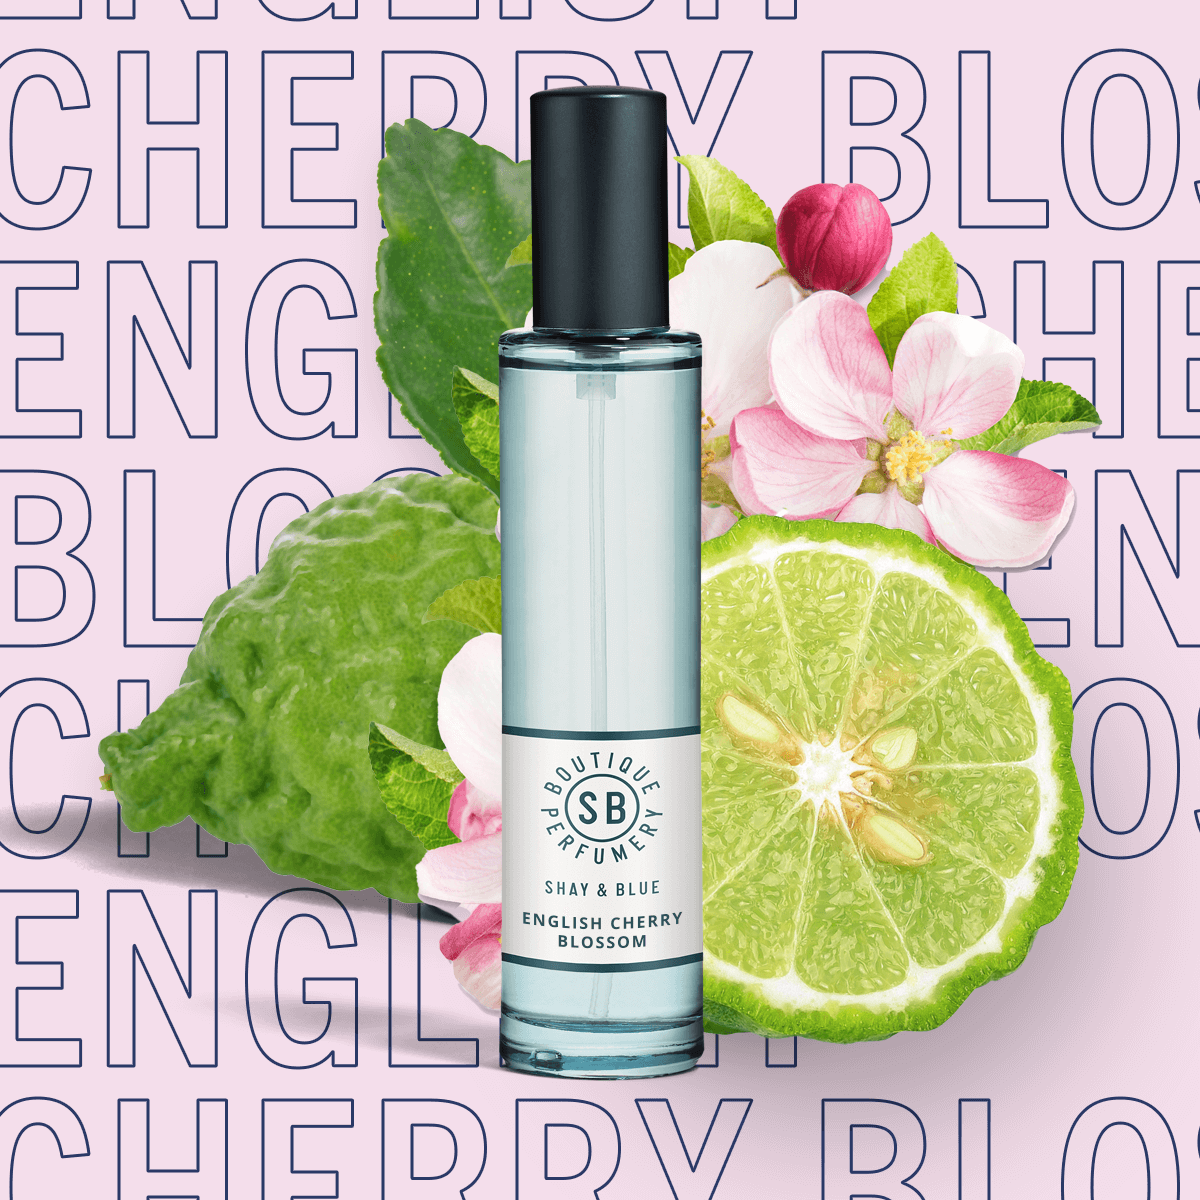 English Cherry Blossom Fragrance 30ml | Airy blossom with black cherries, fig and bergamot for a sparkling citrus lift. | Clean All Gender Fragrance | Shay & Blue